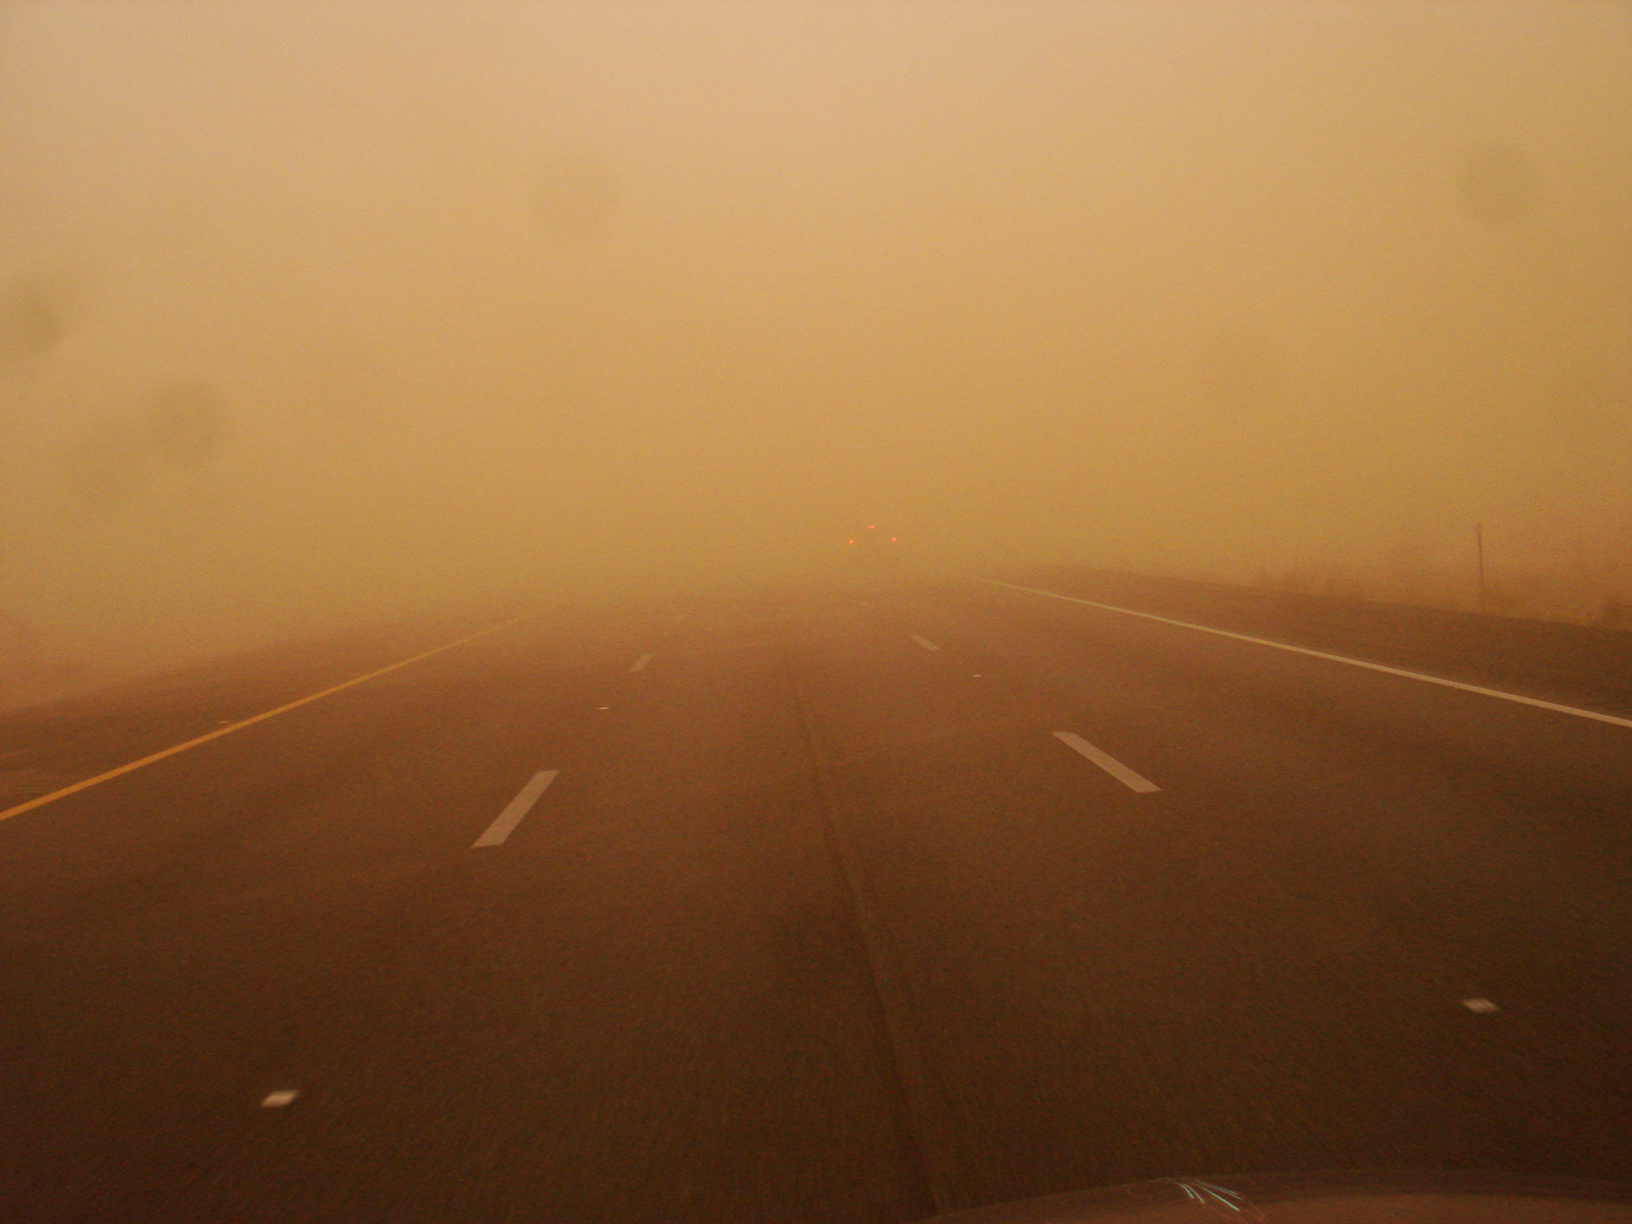 Dust storm - driving through one